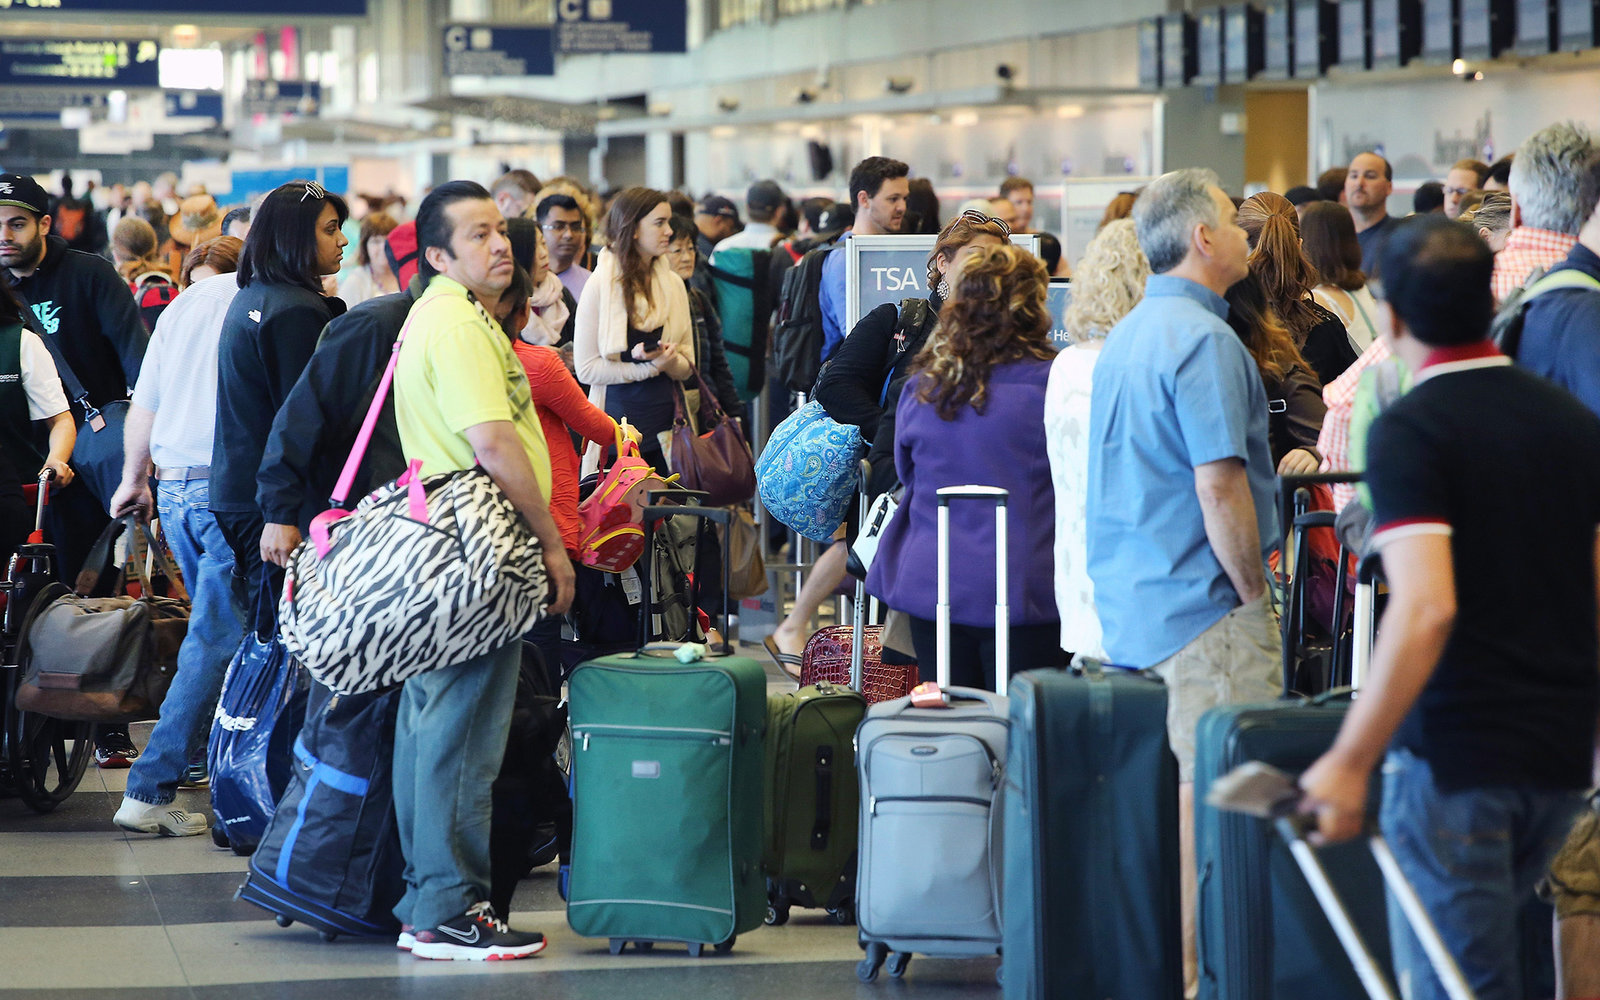 CHICAGO, IL - MAY 23:  Passengers wait in line at a security checkpoint at O'Hare Airport May 23, 2014 in Chicago, Illinois. Chicago's O'Hare and Midway International Airports expect 1.5 million passengers over a six-day travel period covering Memorial Da